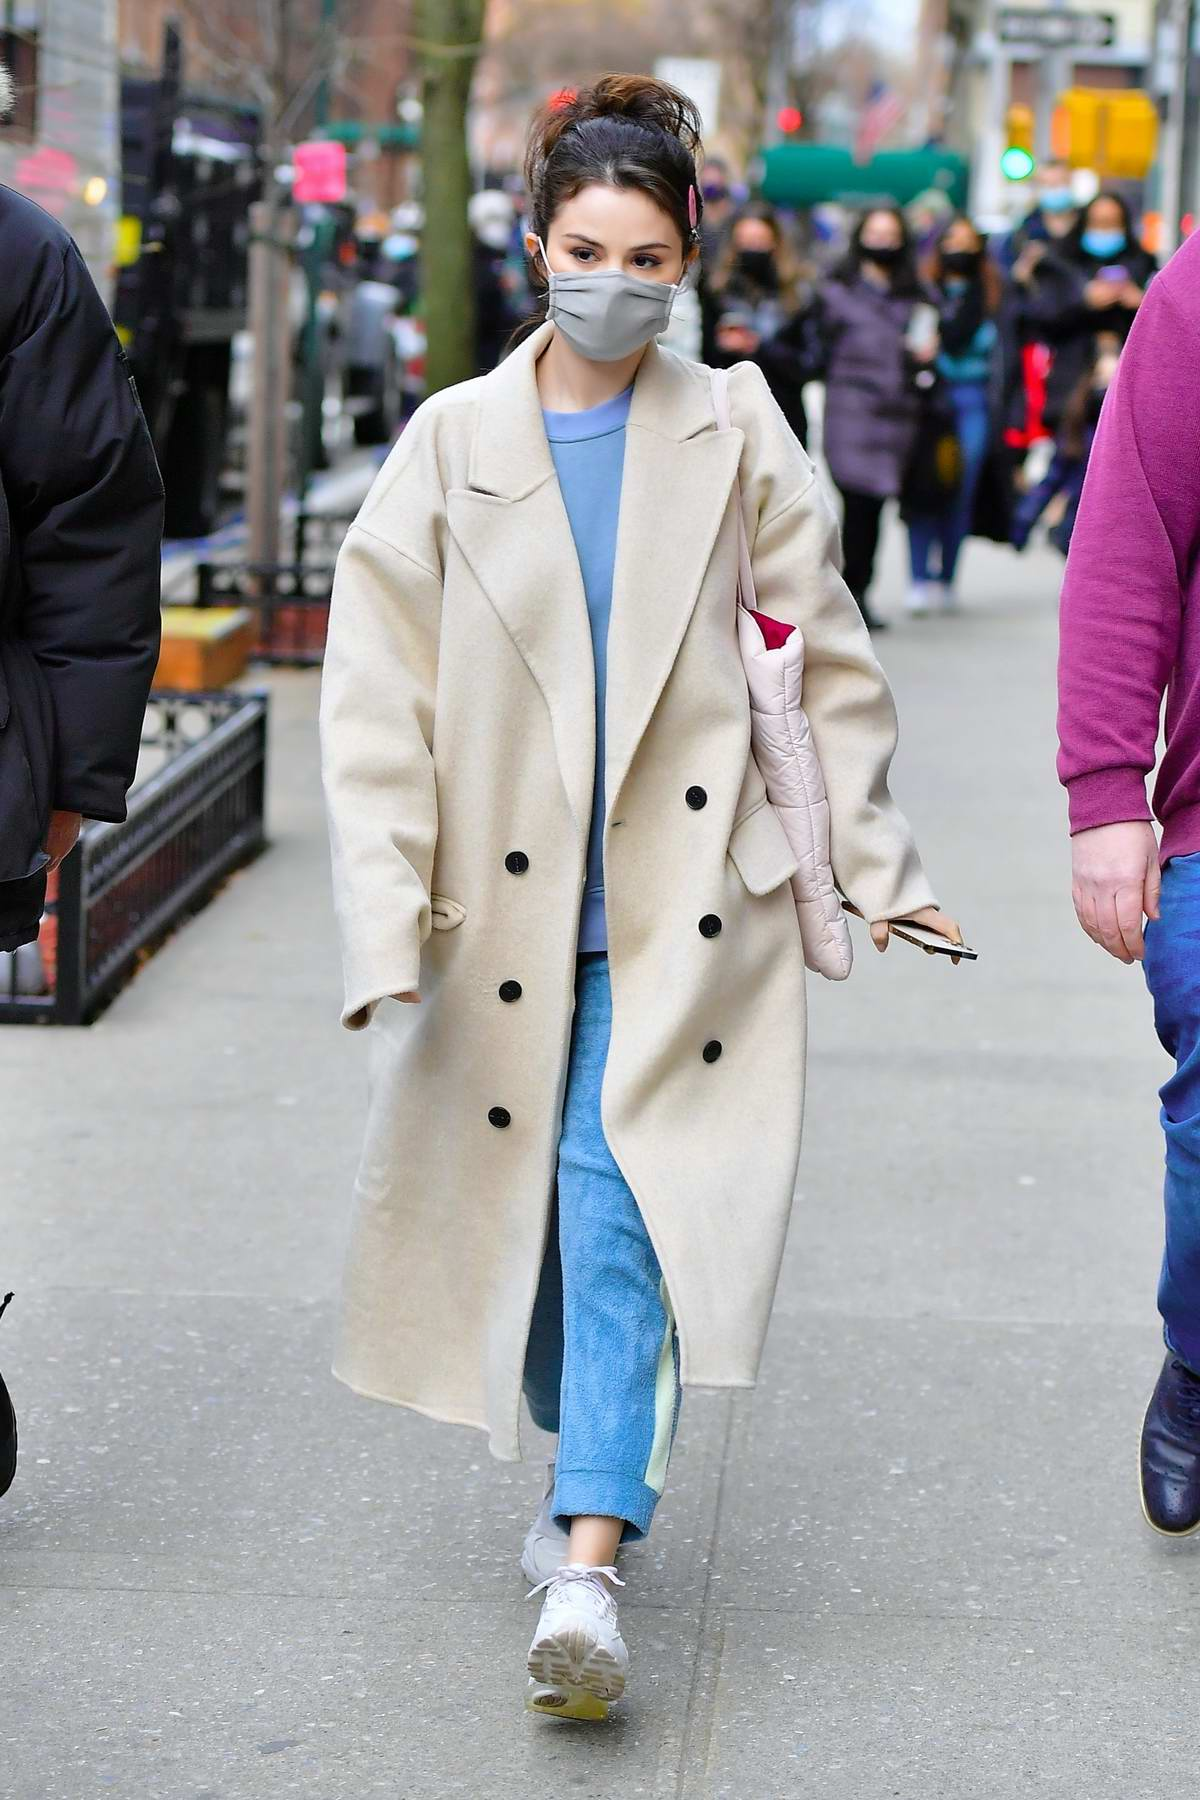 Selena Gomez looks cute in an off-white overcoat as she heads to the set of 'Only Murders in The Building' in New York City